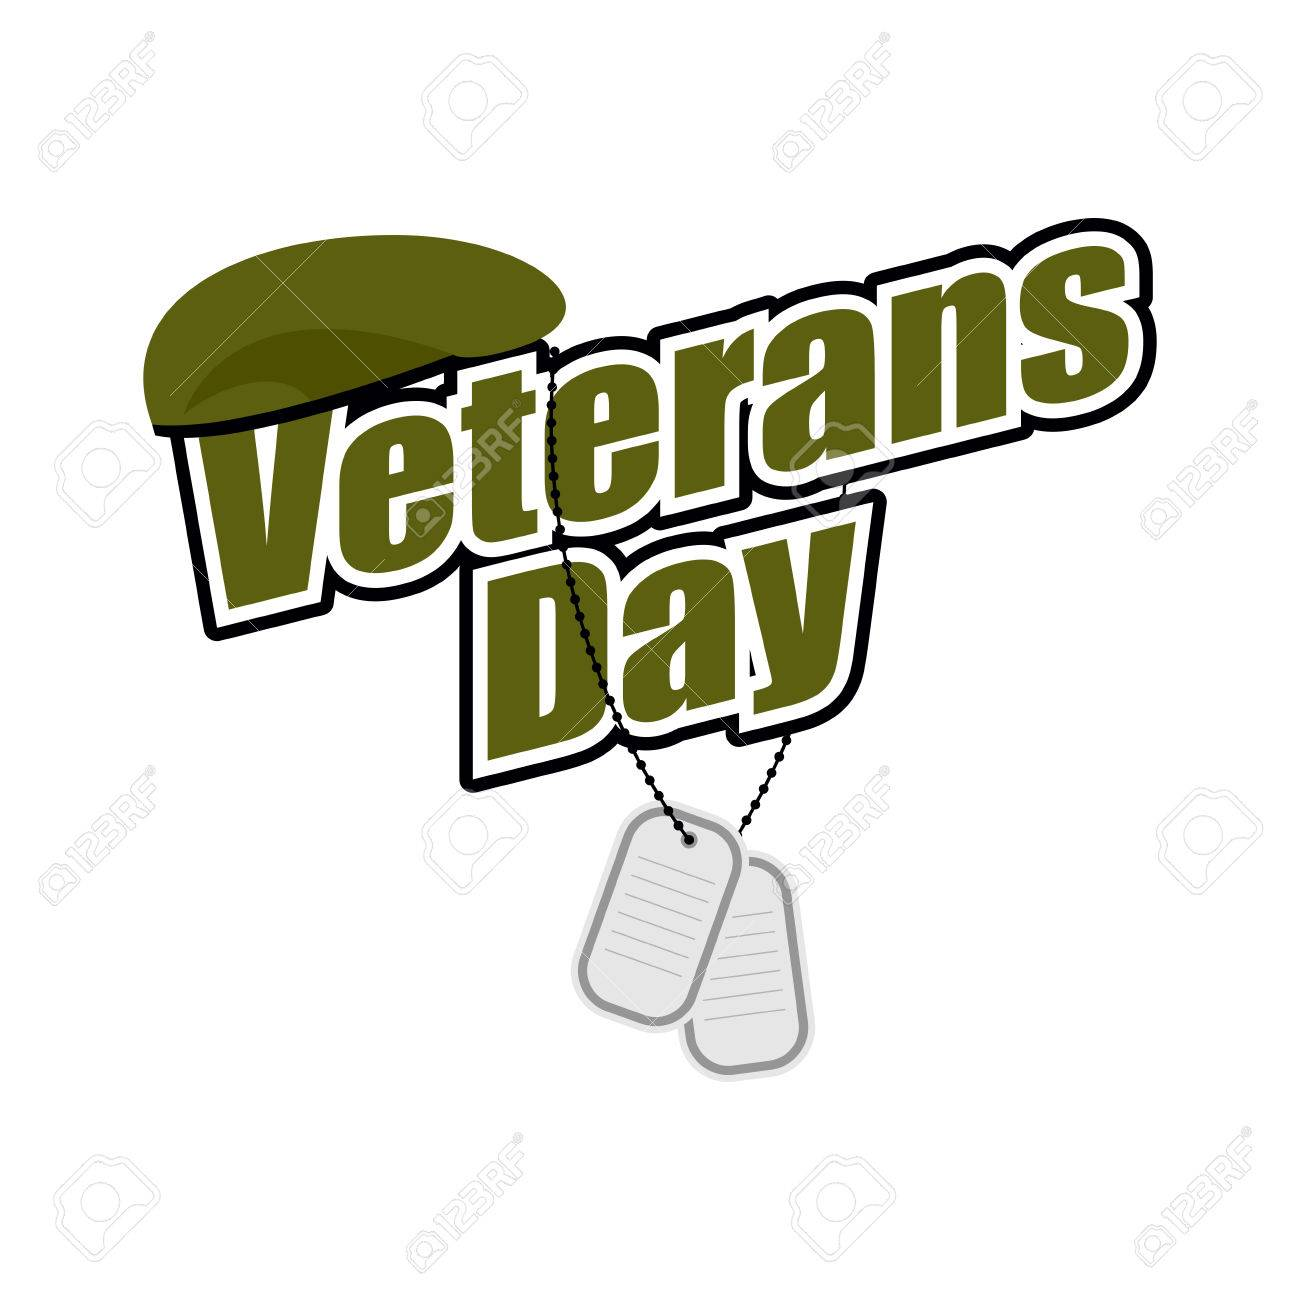 Veterans day text with army token and green beret soldier veterans day text with army token and green beret soldier national symbols of american biocorpaavc